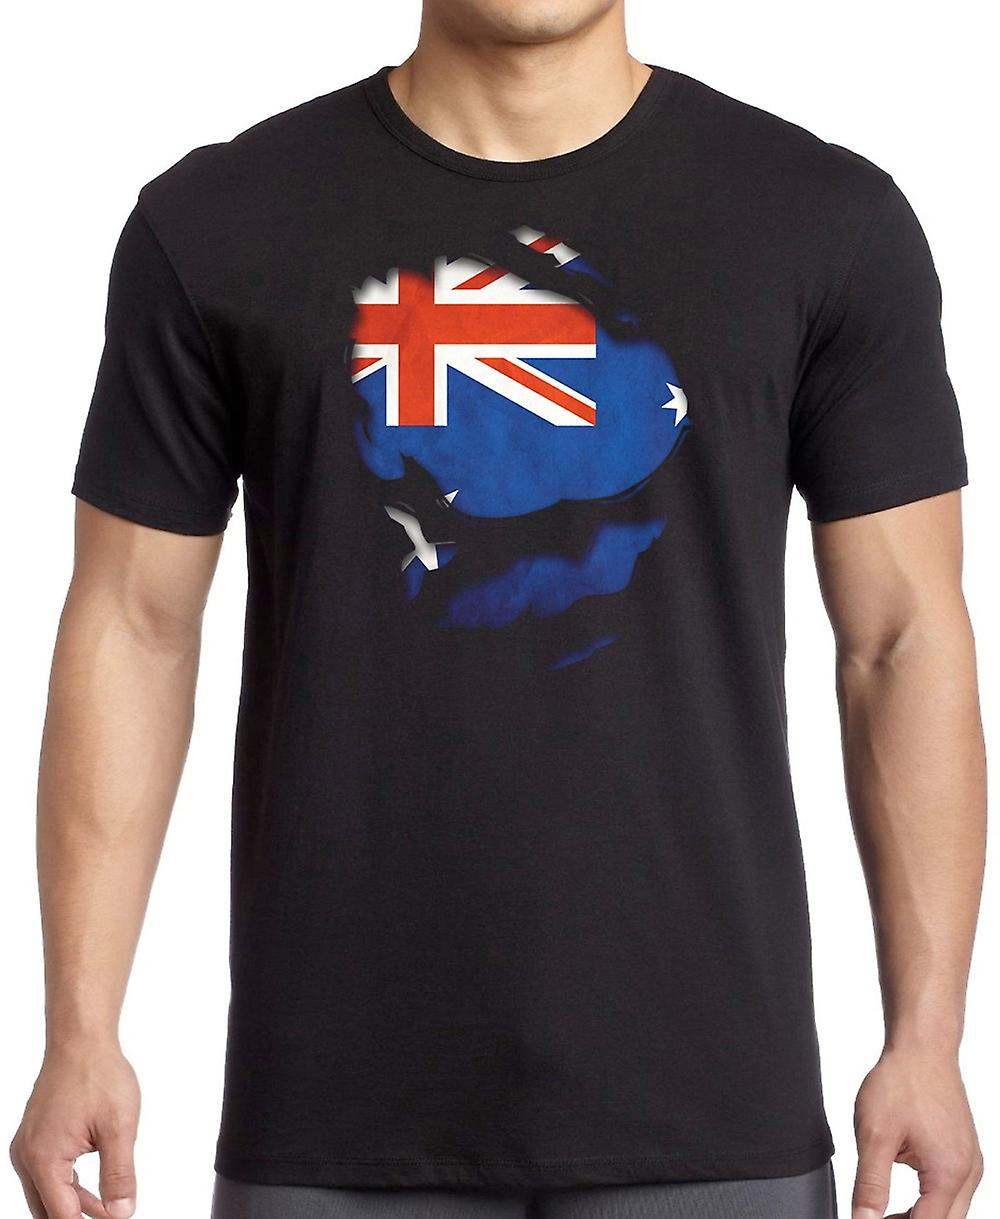 Australia Australia Ripped Effect Under Shirt Kids T Shirt